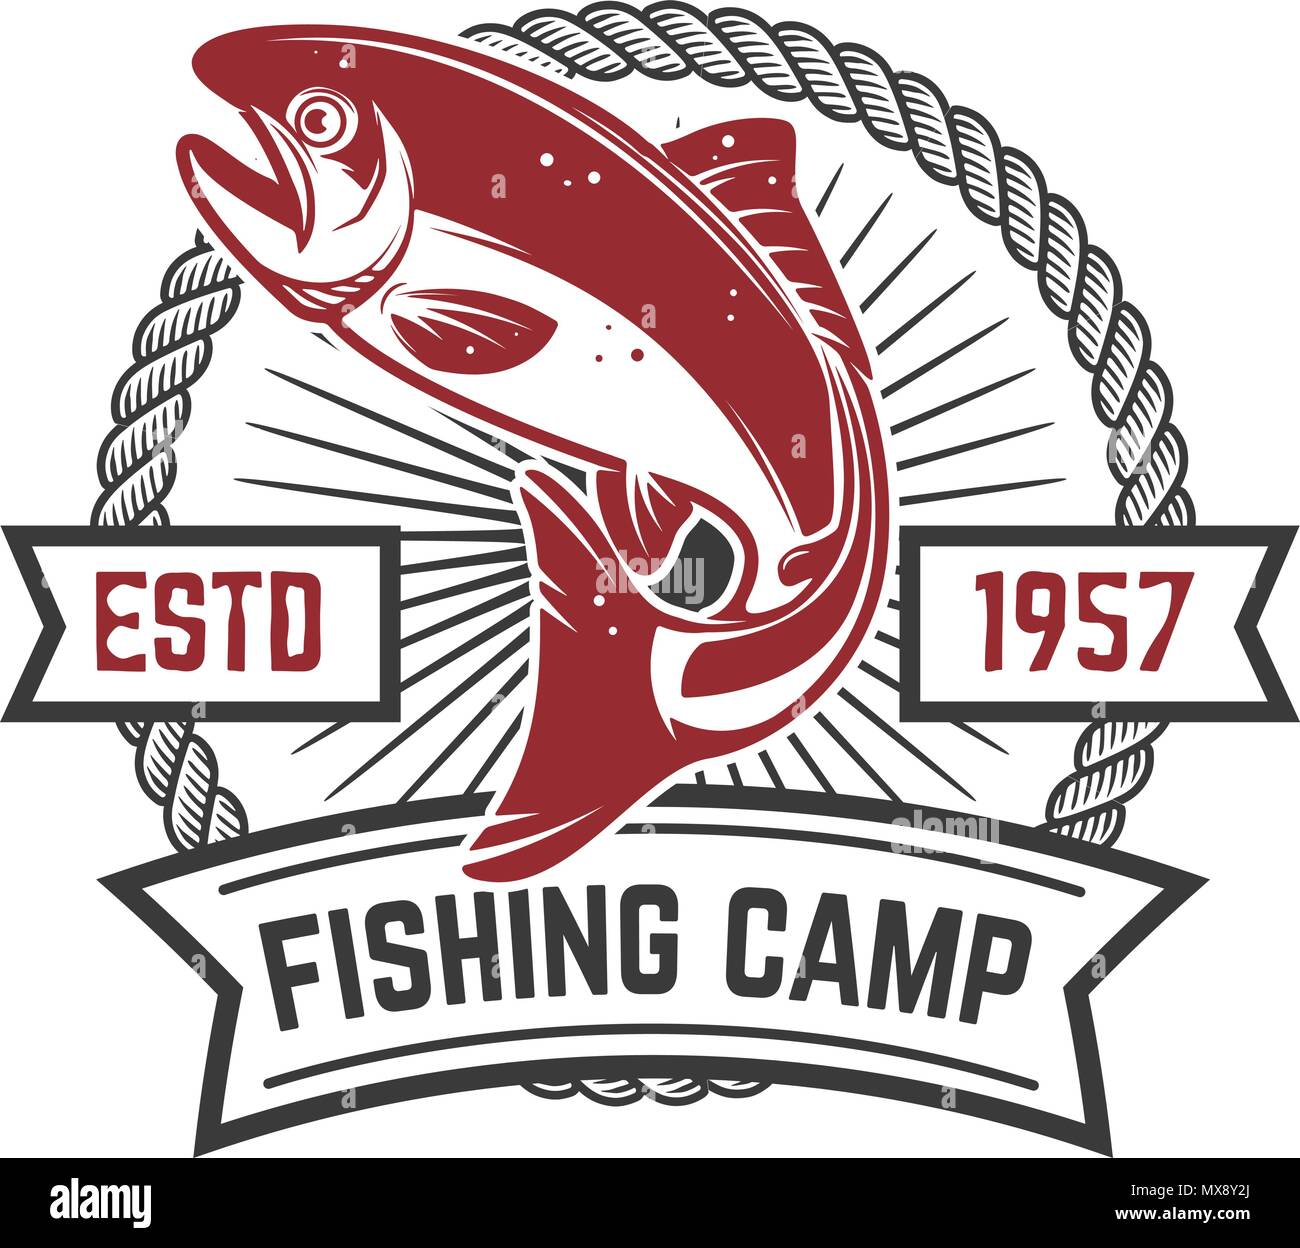 Fishing Vector Logo Design Template Stock Photos & Fishing Vector ...